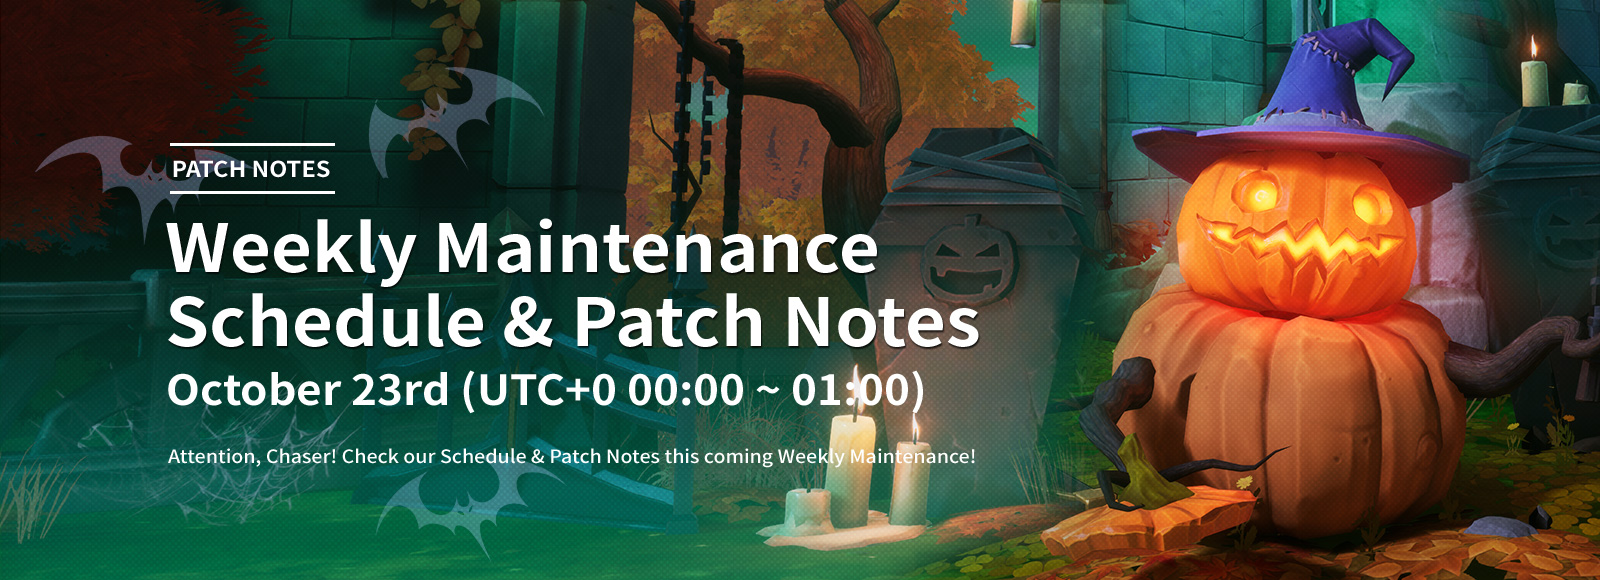 October 23rd Weekly Maintenance Schedule & Patch Notes